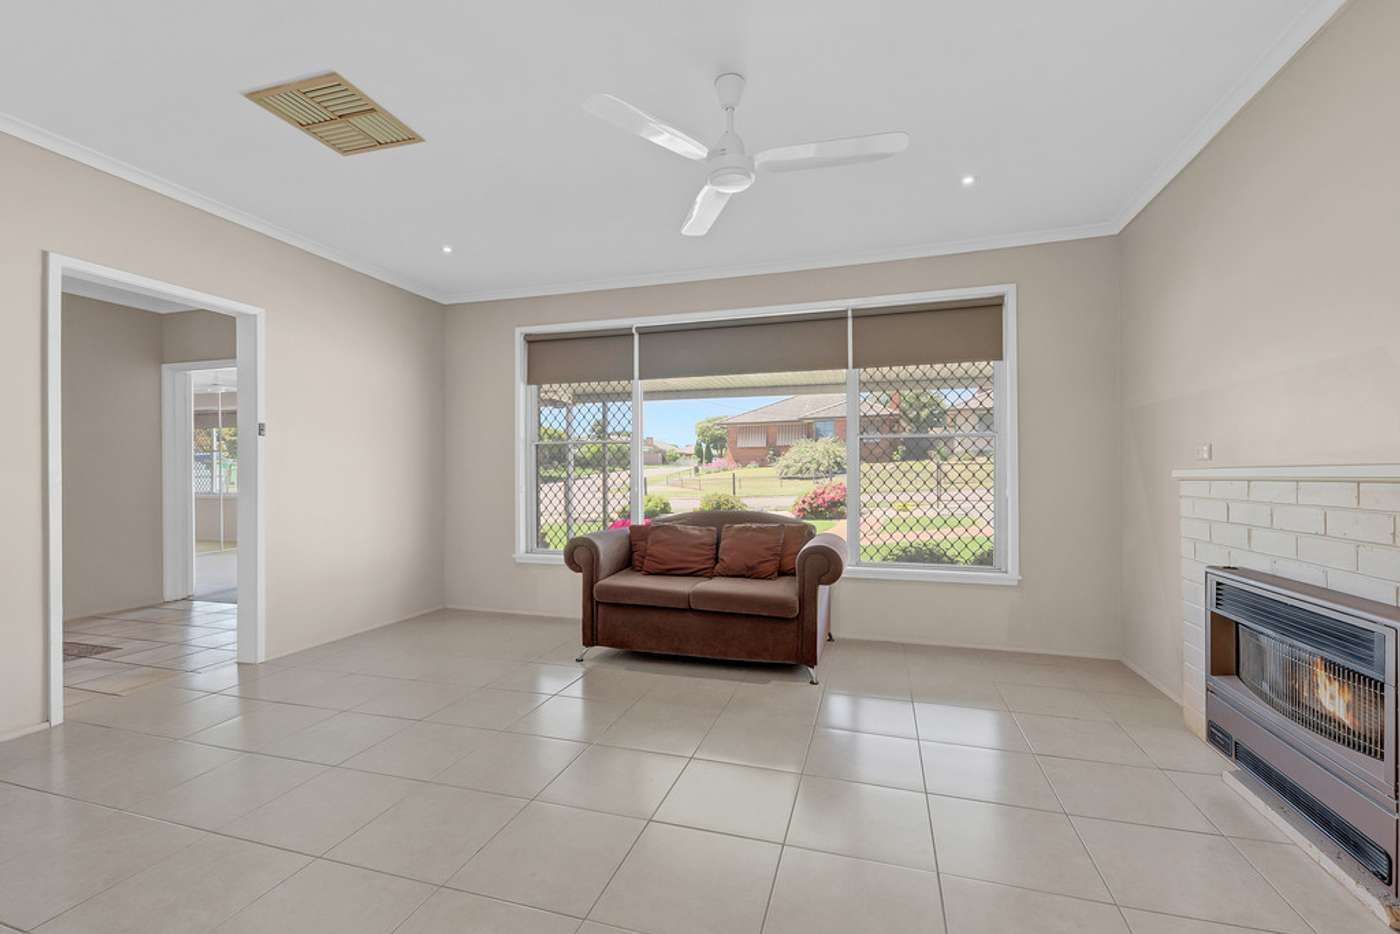 Fifth view of Homely house listing, 11 Hereford Street, Wodonga VIC 3690